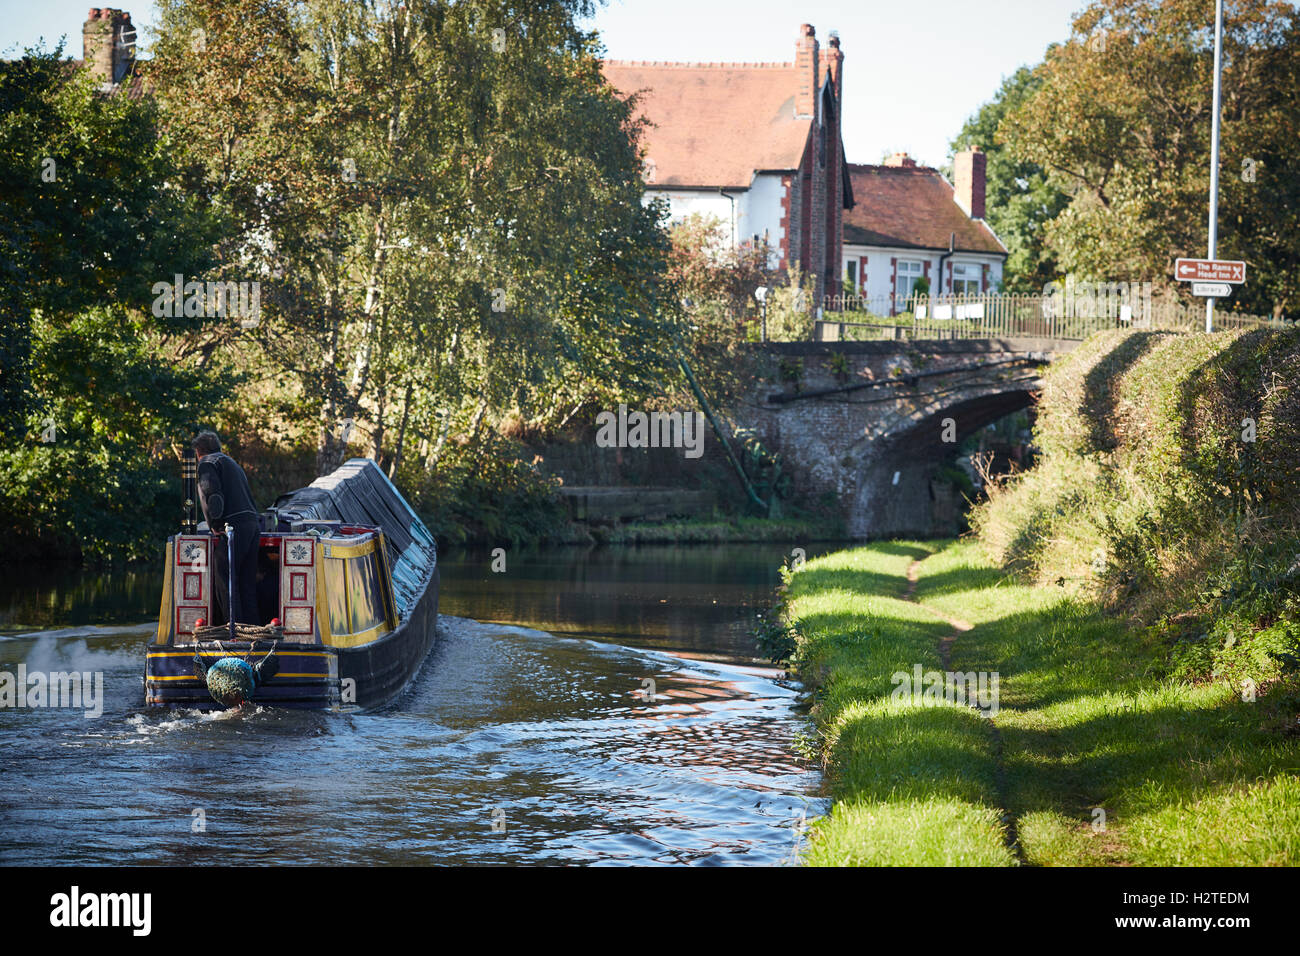 Warrington Bridgewater Canal Grappenhall  Boat canals narrowboat stream narrow club stoppages canalside list owner - Stock Image